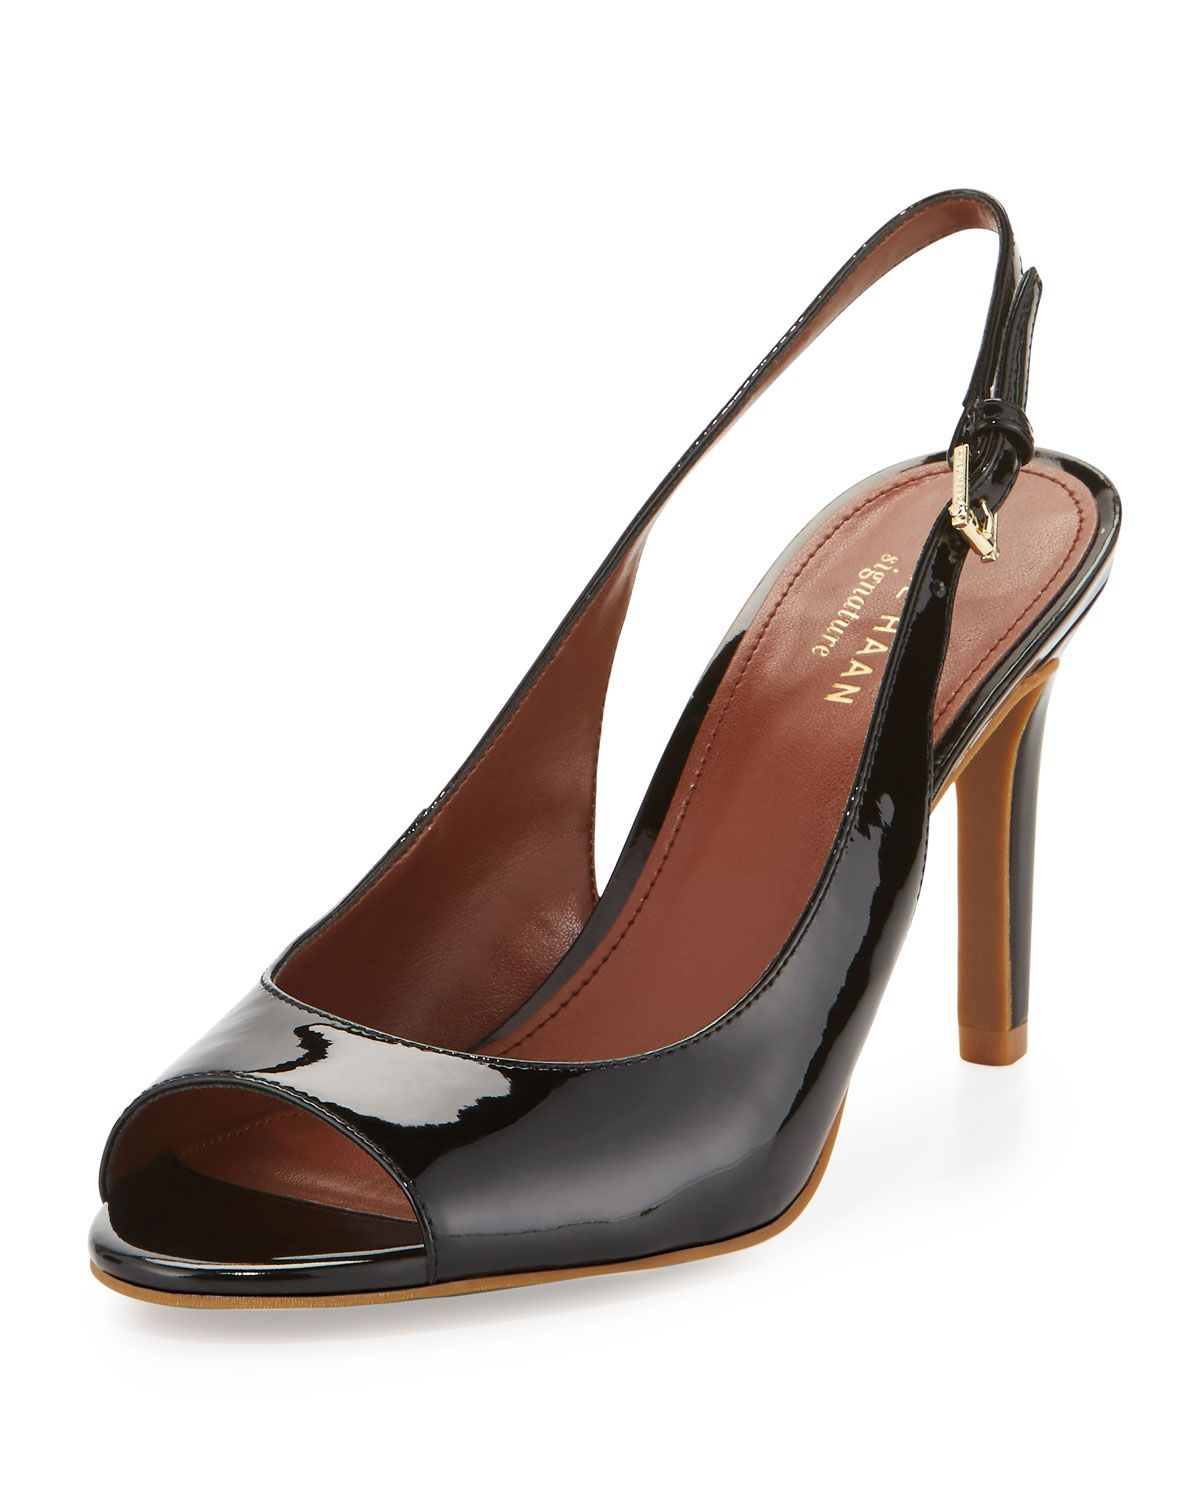 Cole Haan Juliana Patent Slingback Peep-Toe Pump, Black, Women's, Size: 10, Black Pate